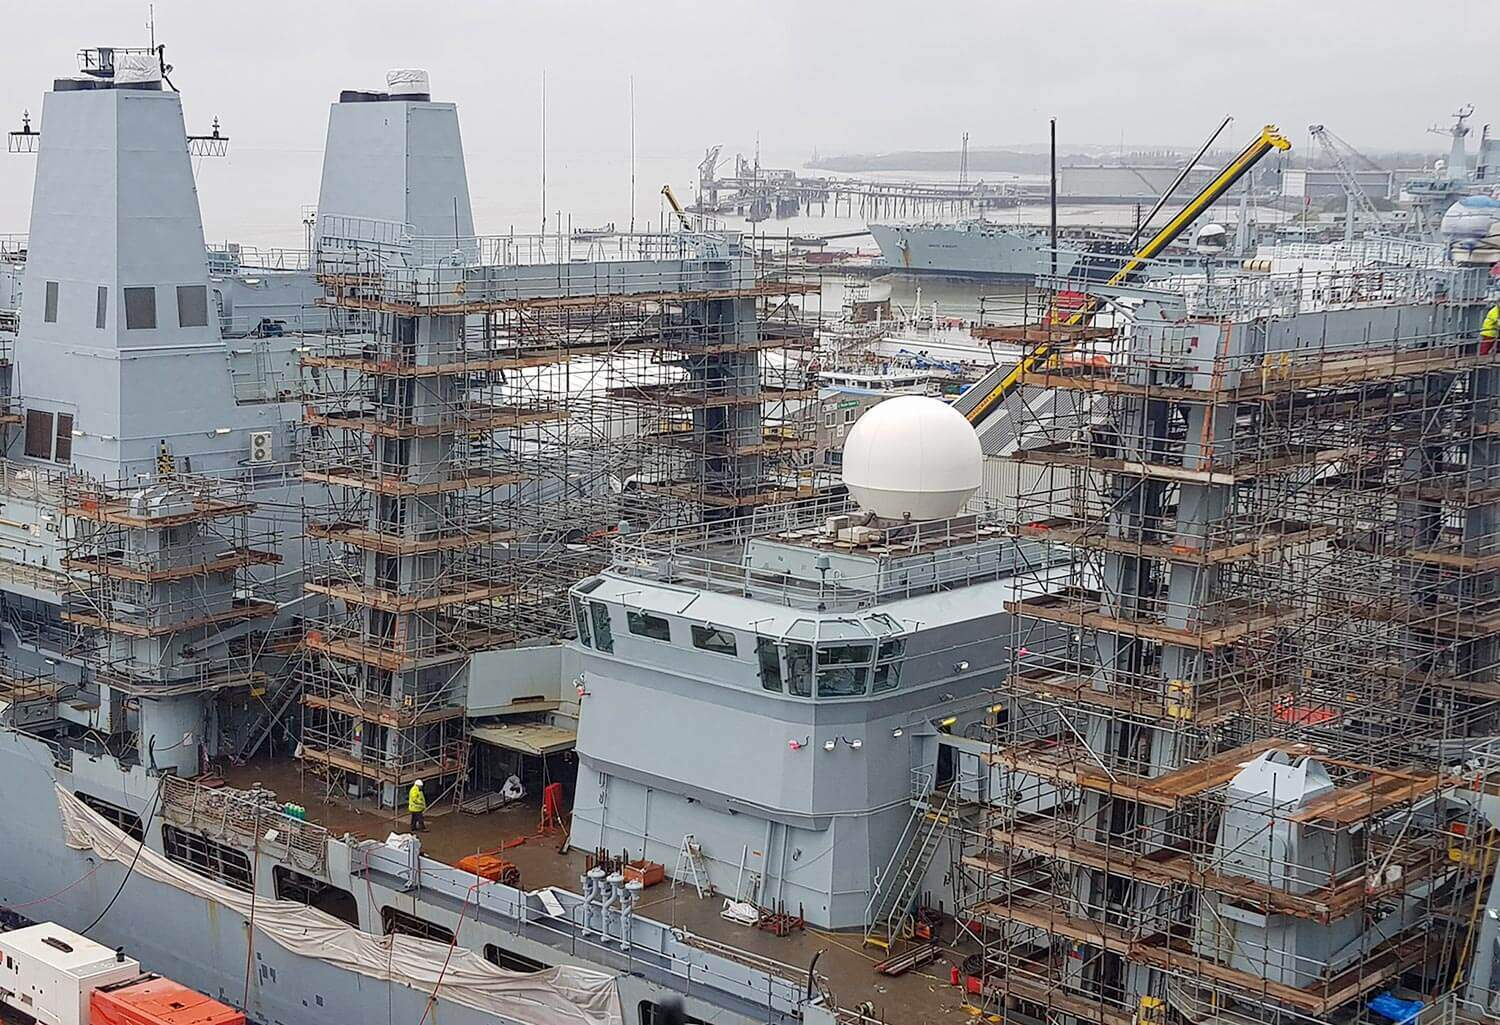 RFA Fort Victoria Refit Cammell Laird